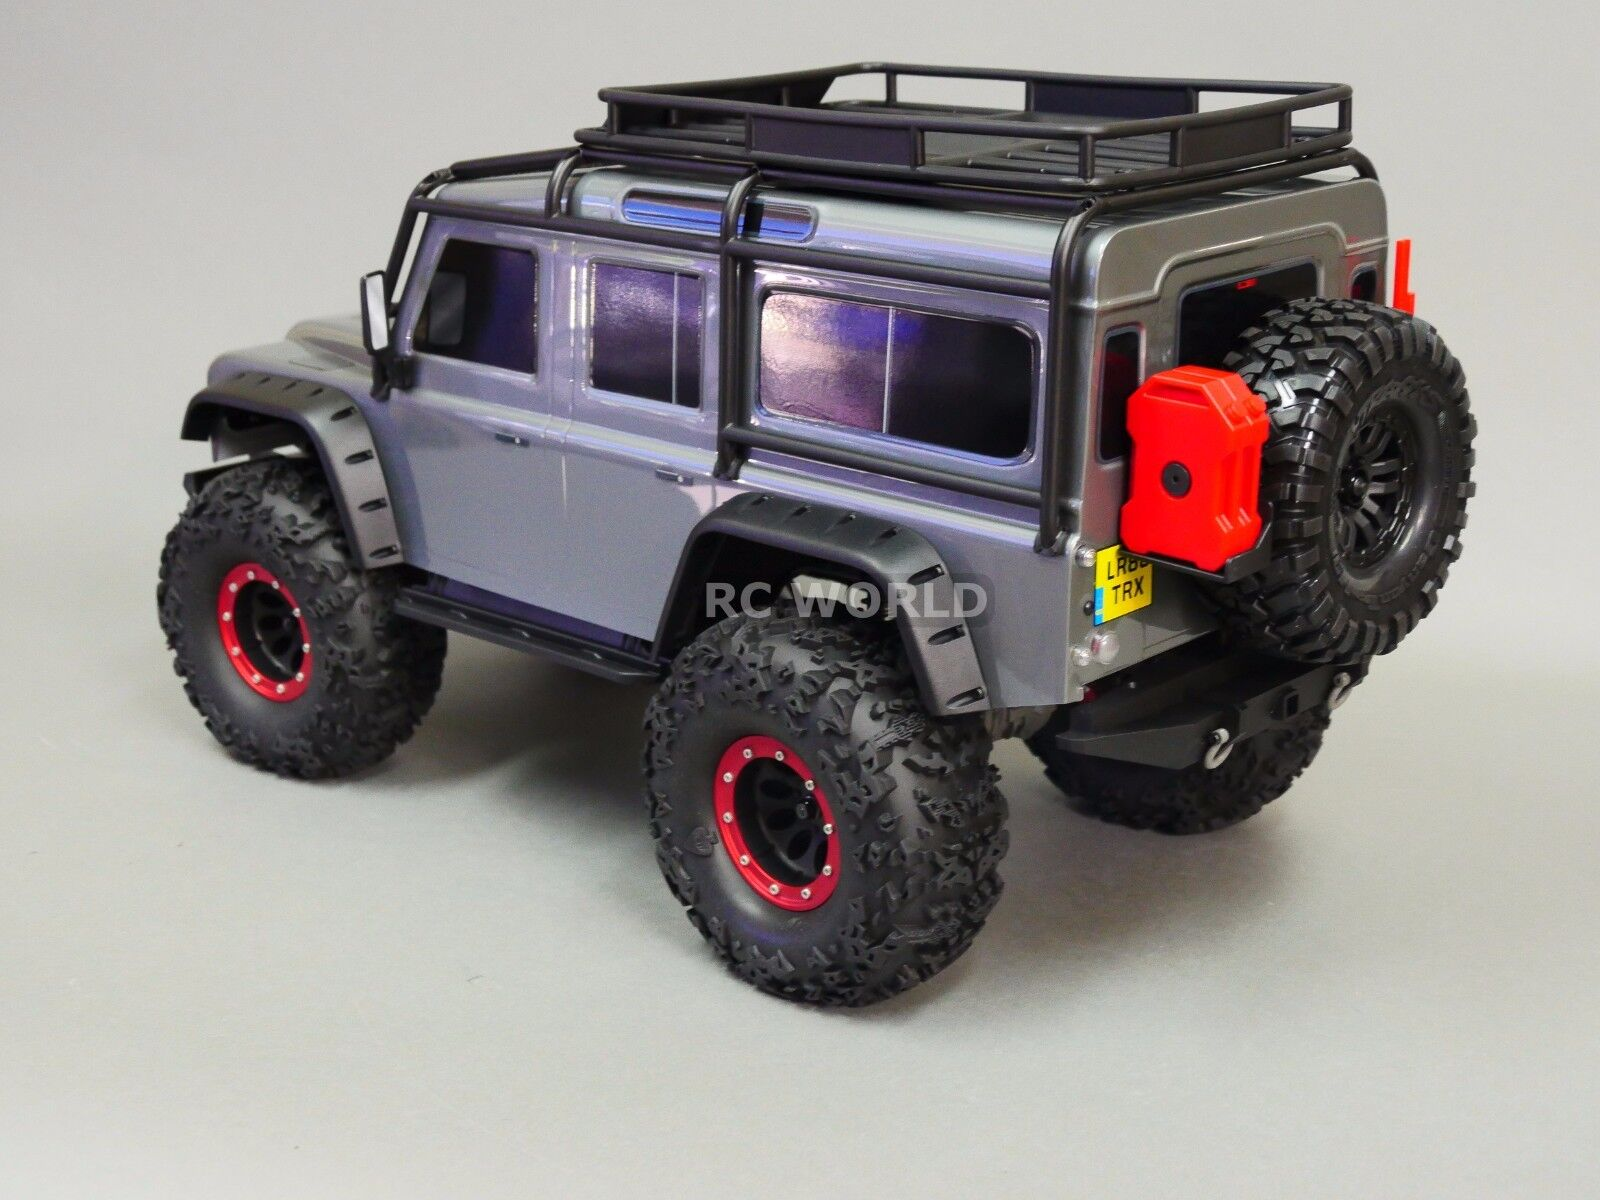 radio control stores with Traxxas Trx 4 Rock Crawler Beadlock Wheels 192330308476 on 32634201154 as well X6 moreover Types Flowchart furthermore Tpm additionally 32779288371.